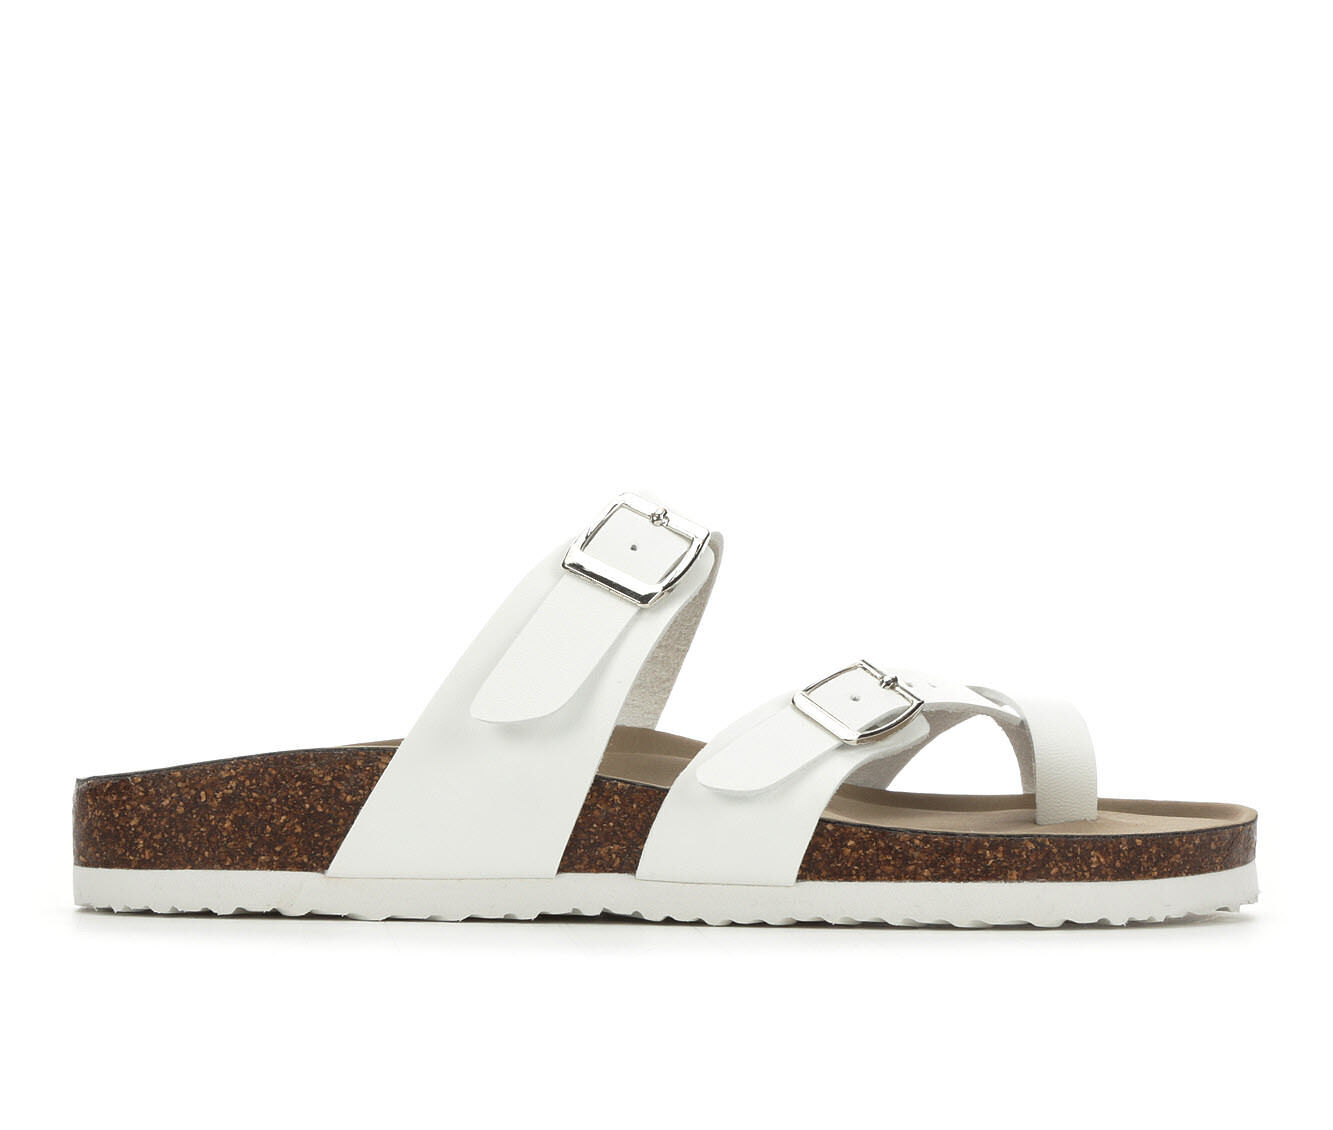 Women's Madden Girl Bryceee Footbed Sandals White/White